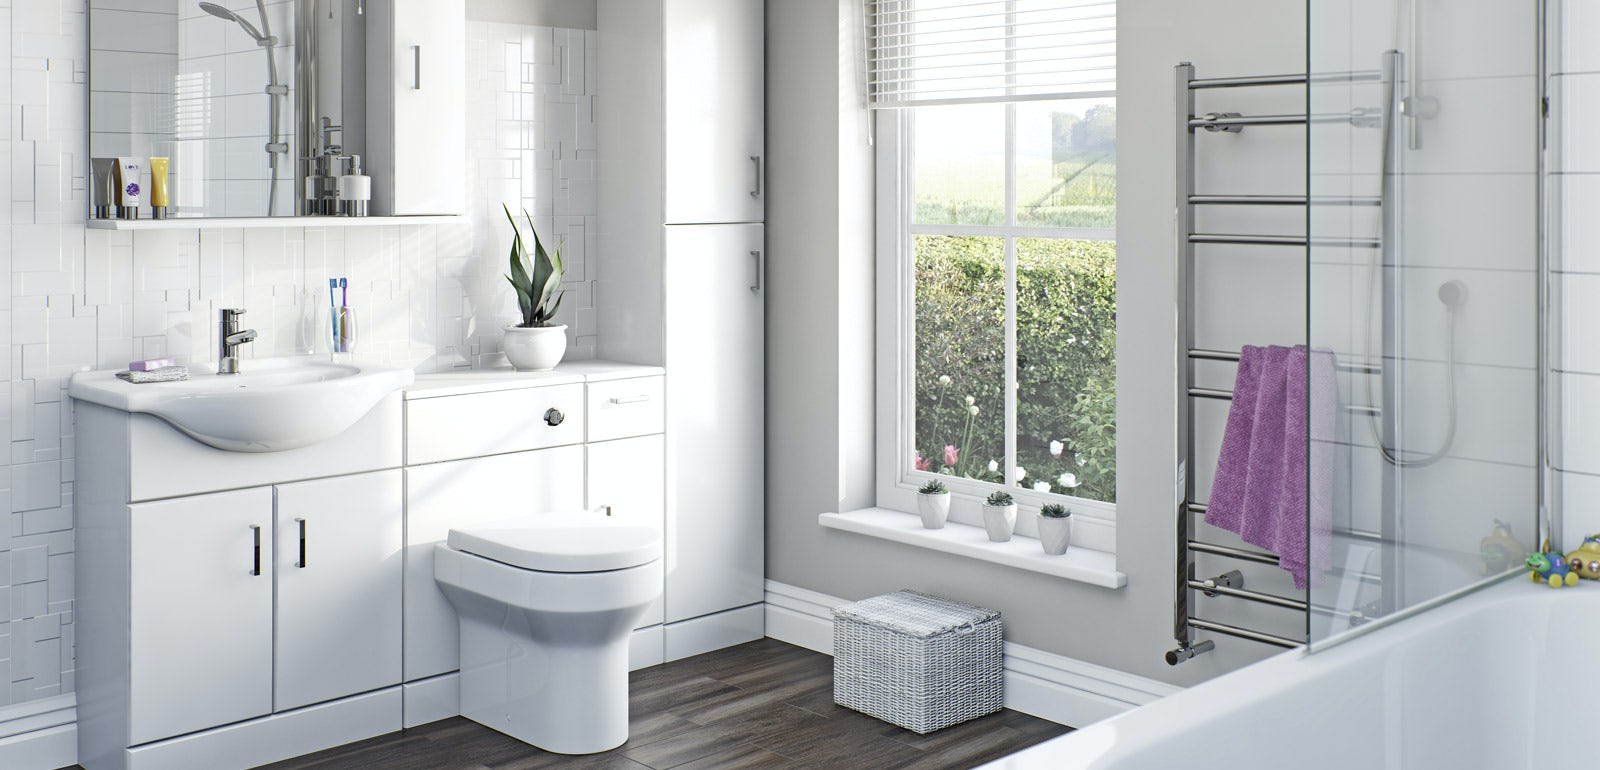 Awesome Functional Minimalist White Bathroom Furniture  DigsDigs